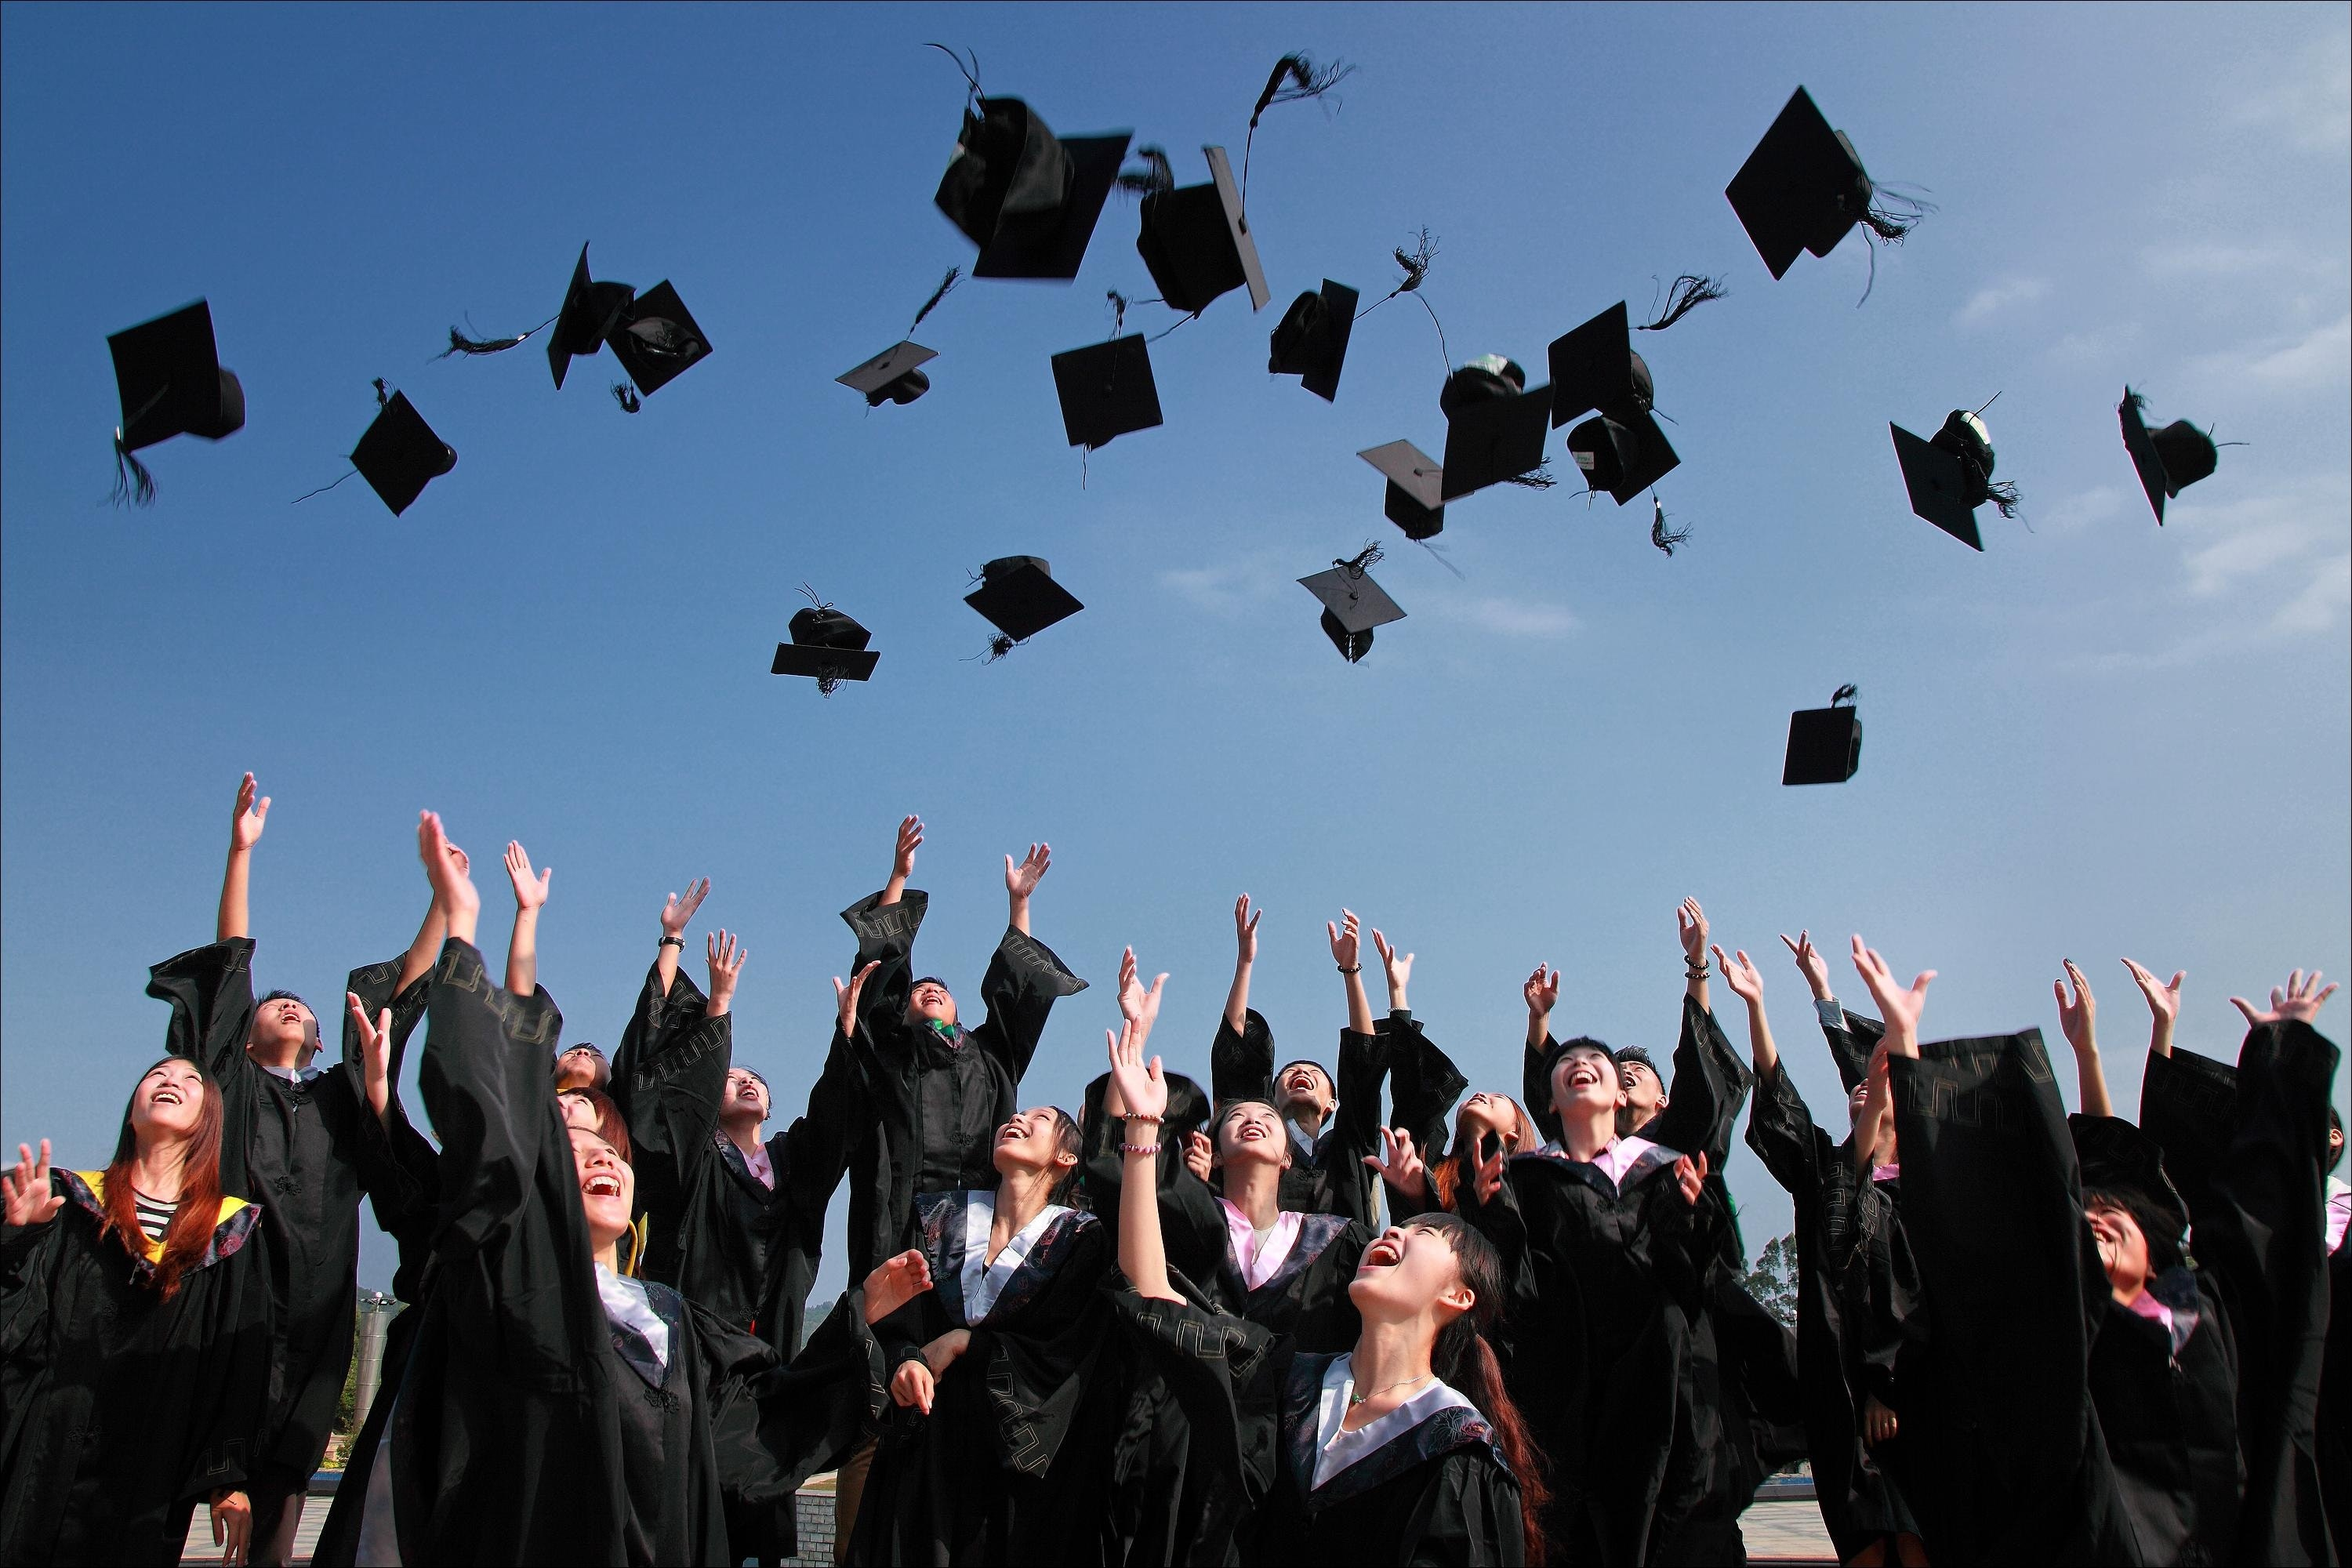 Higher Education is not an Either-Or